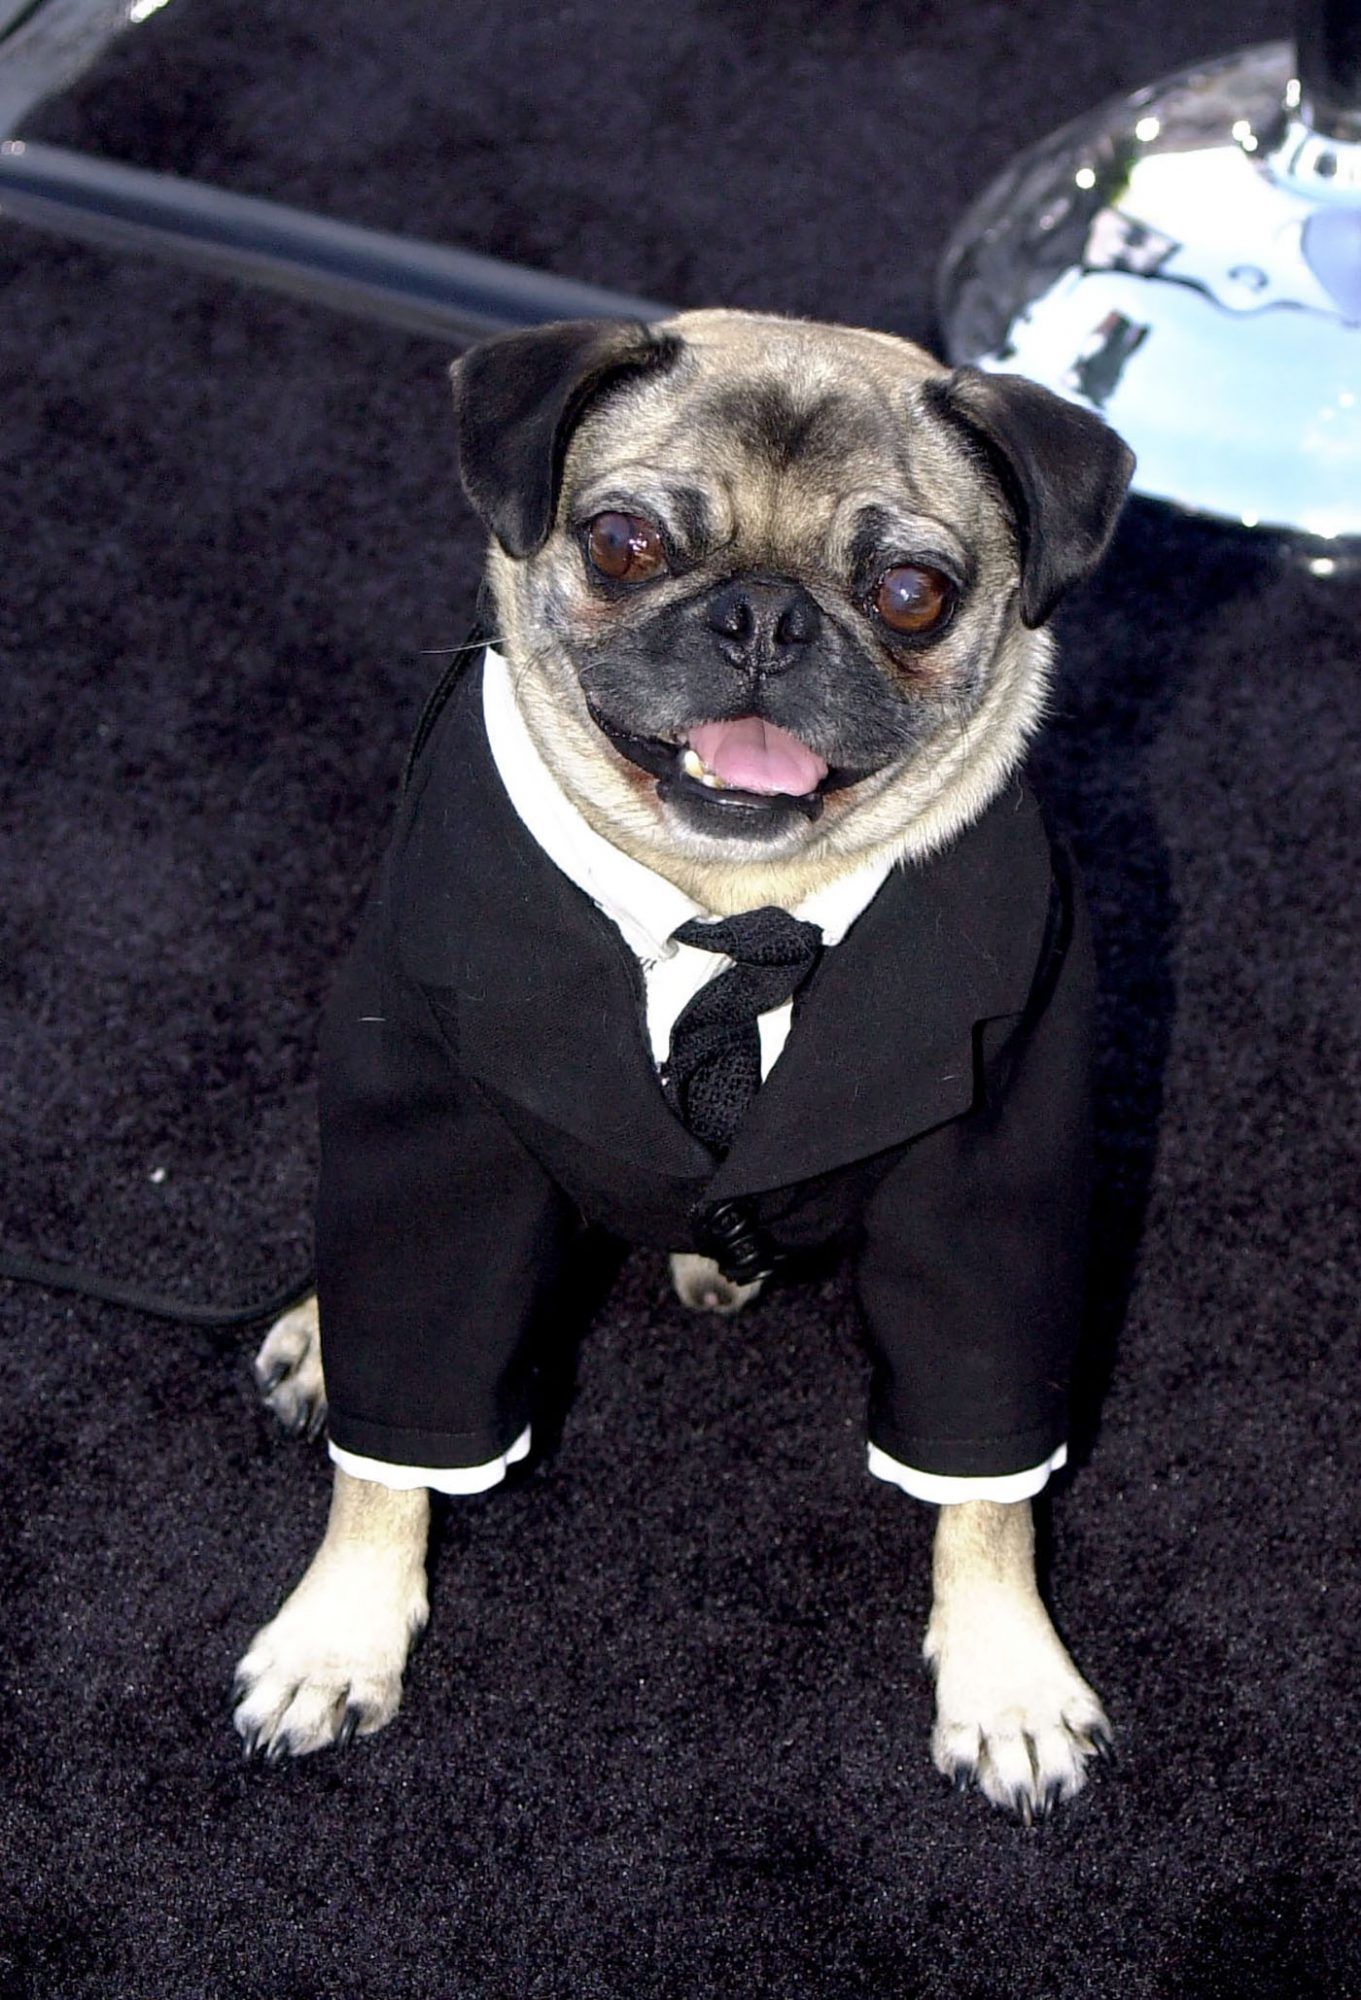 frank the pug from men in black 2